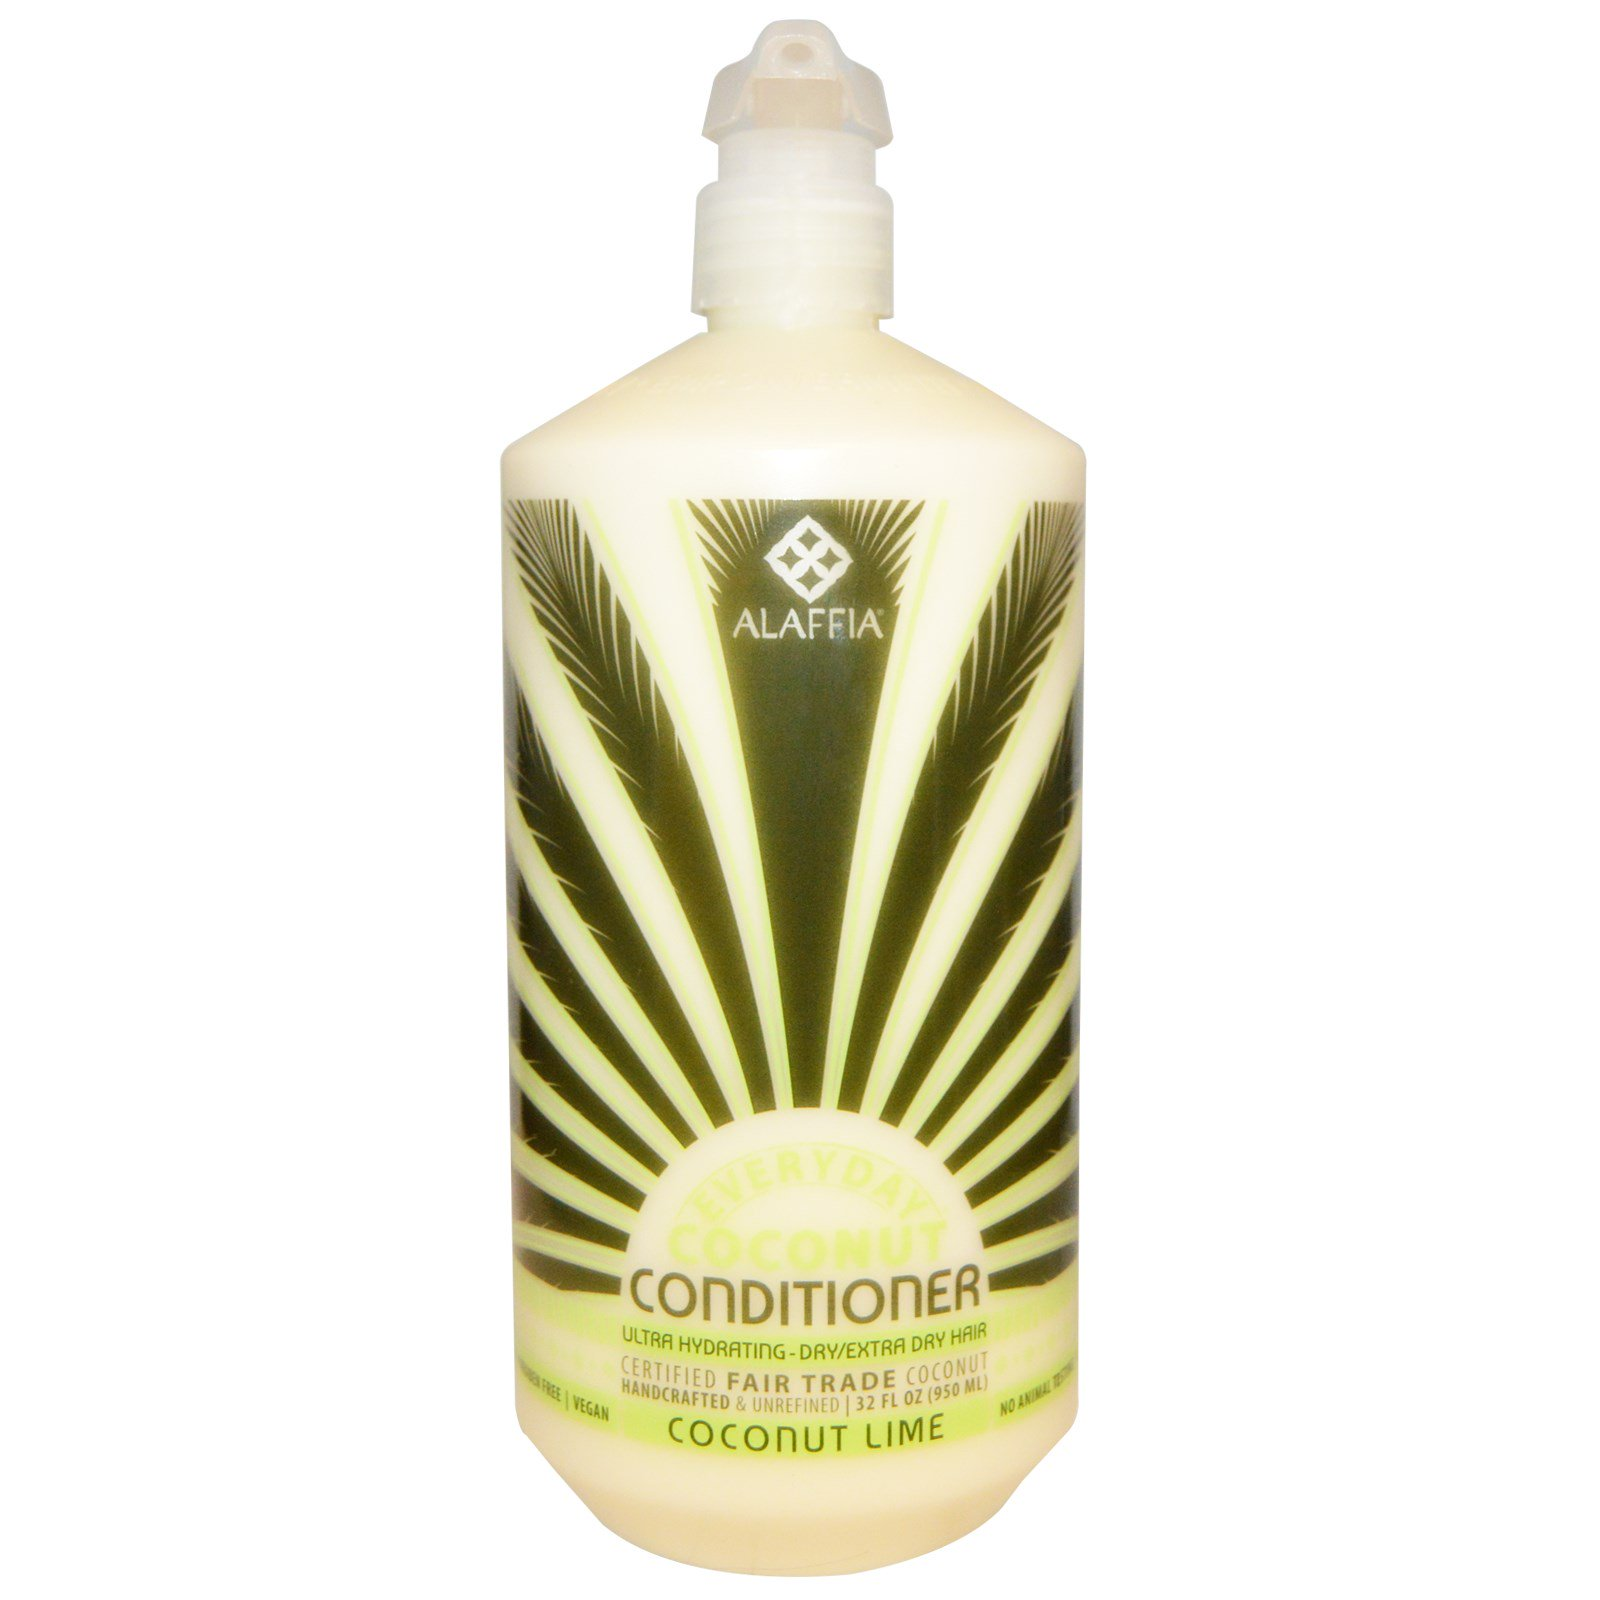 Everyday Coconut, Conditioner, Ultra Hydrating, Dry/Extra Dry Hair, Coconut Lime, 32 fl oz (950 ml)